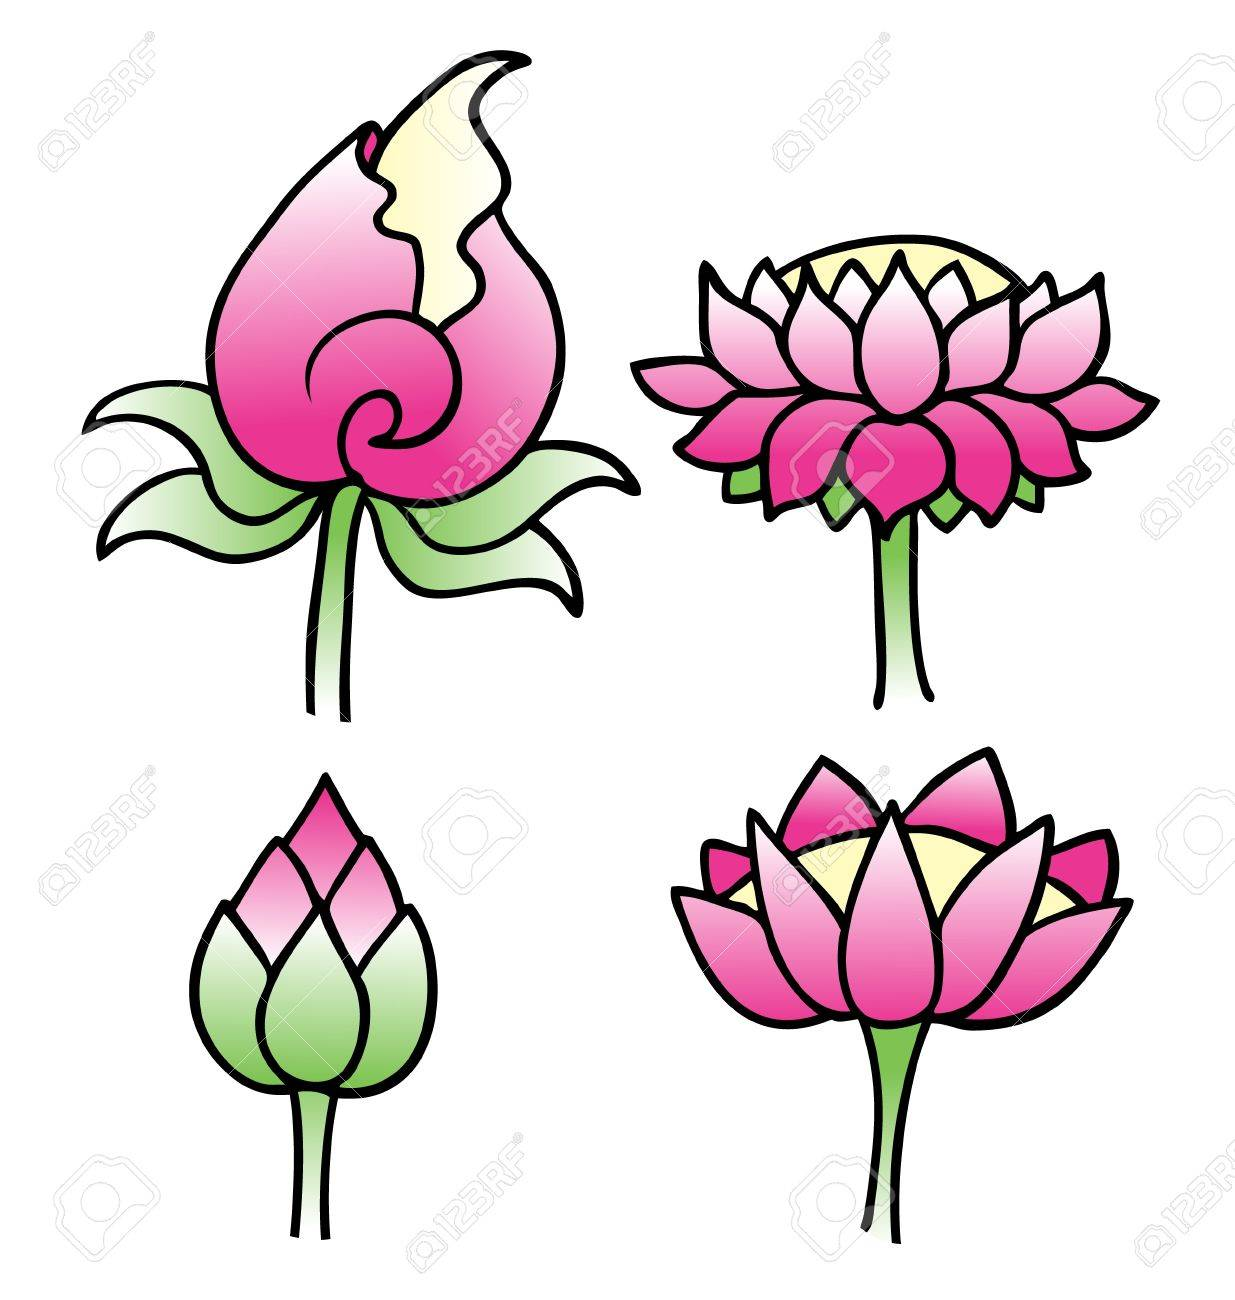 Set of simple lotus flowers in vector format royalty free cliparts set of simple lotus flowers in vector format stock vector 19548562 izmirmasajfo